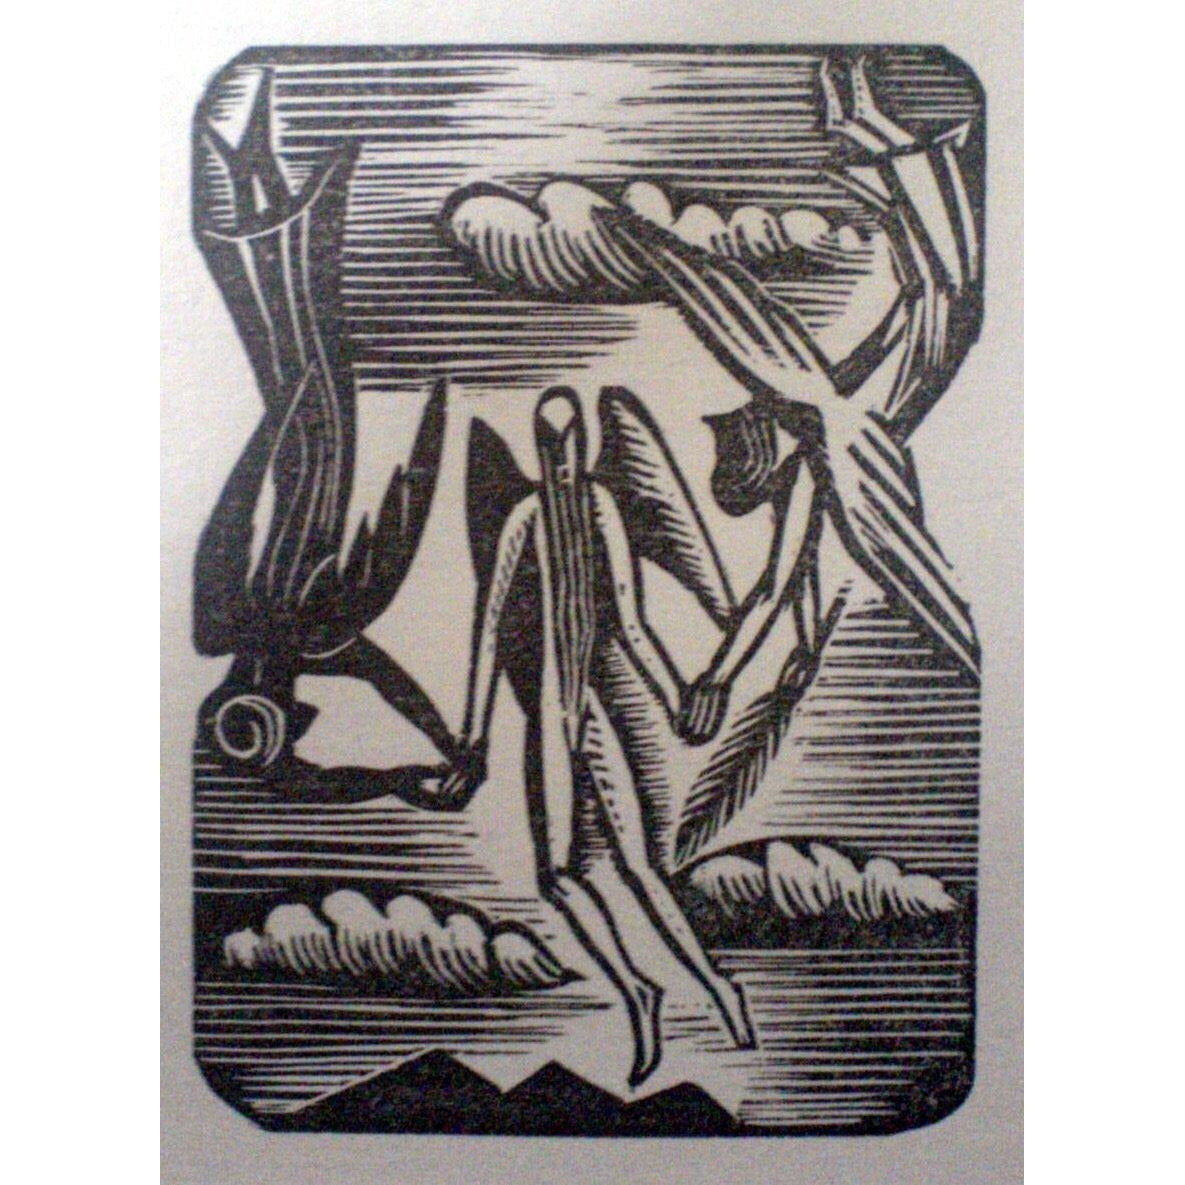 Paul Nash Ltd Ed Woodcut Print - The Two Angels